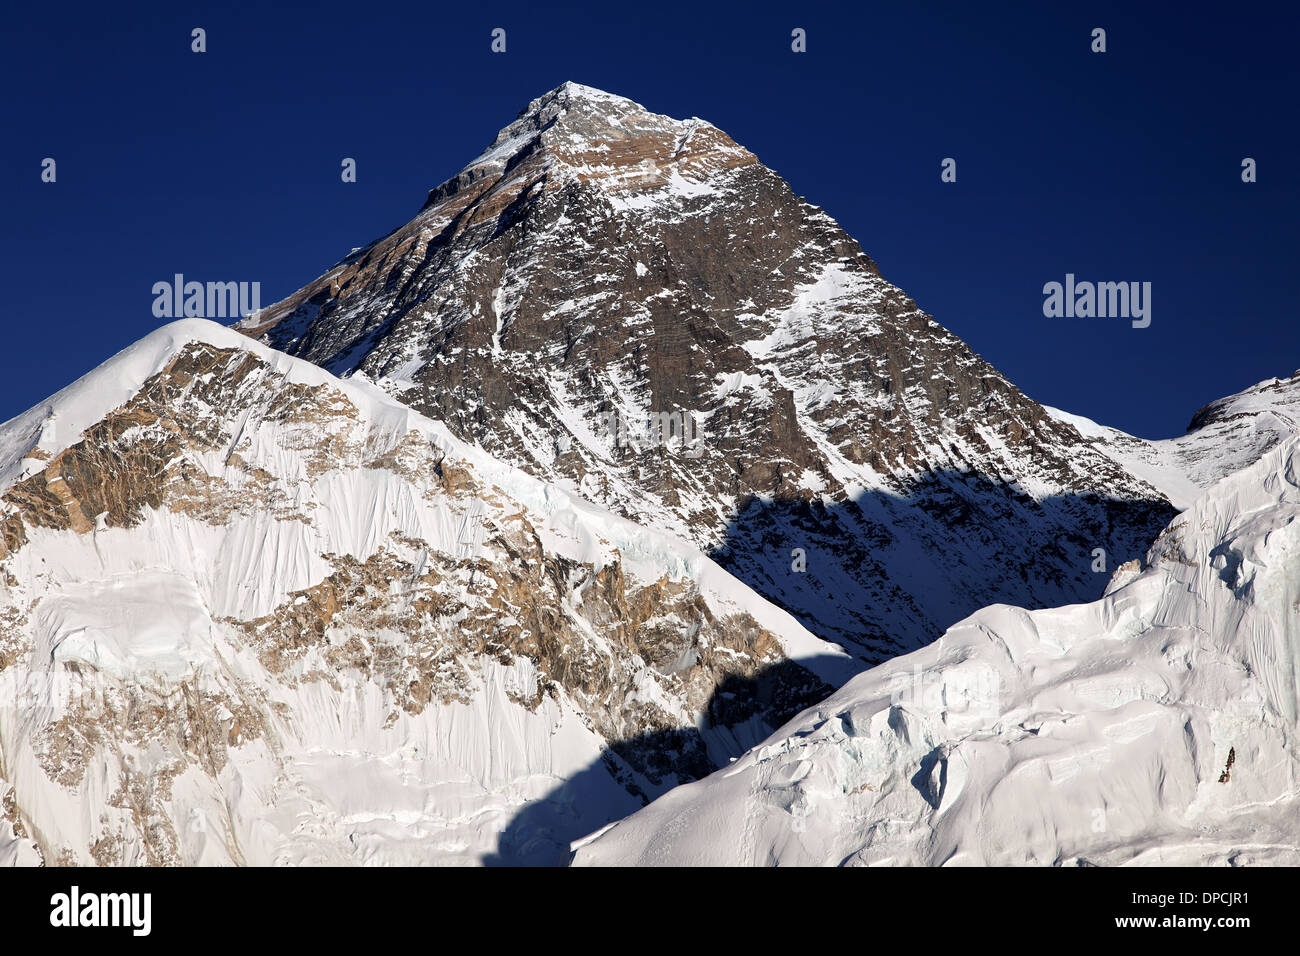 The summit pyramid of Mount Everest, in the Nepal Himalaya - Stock Image